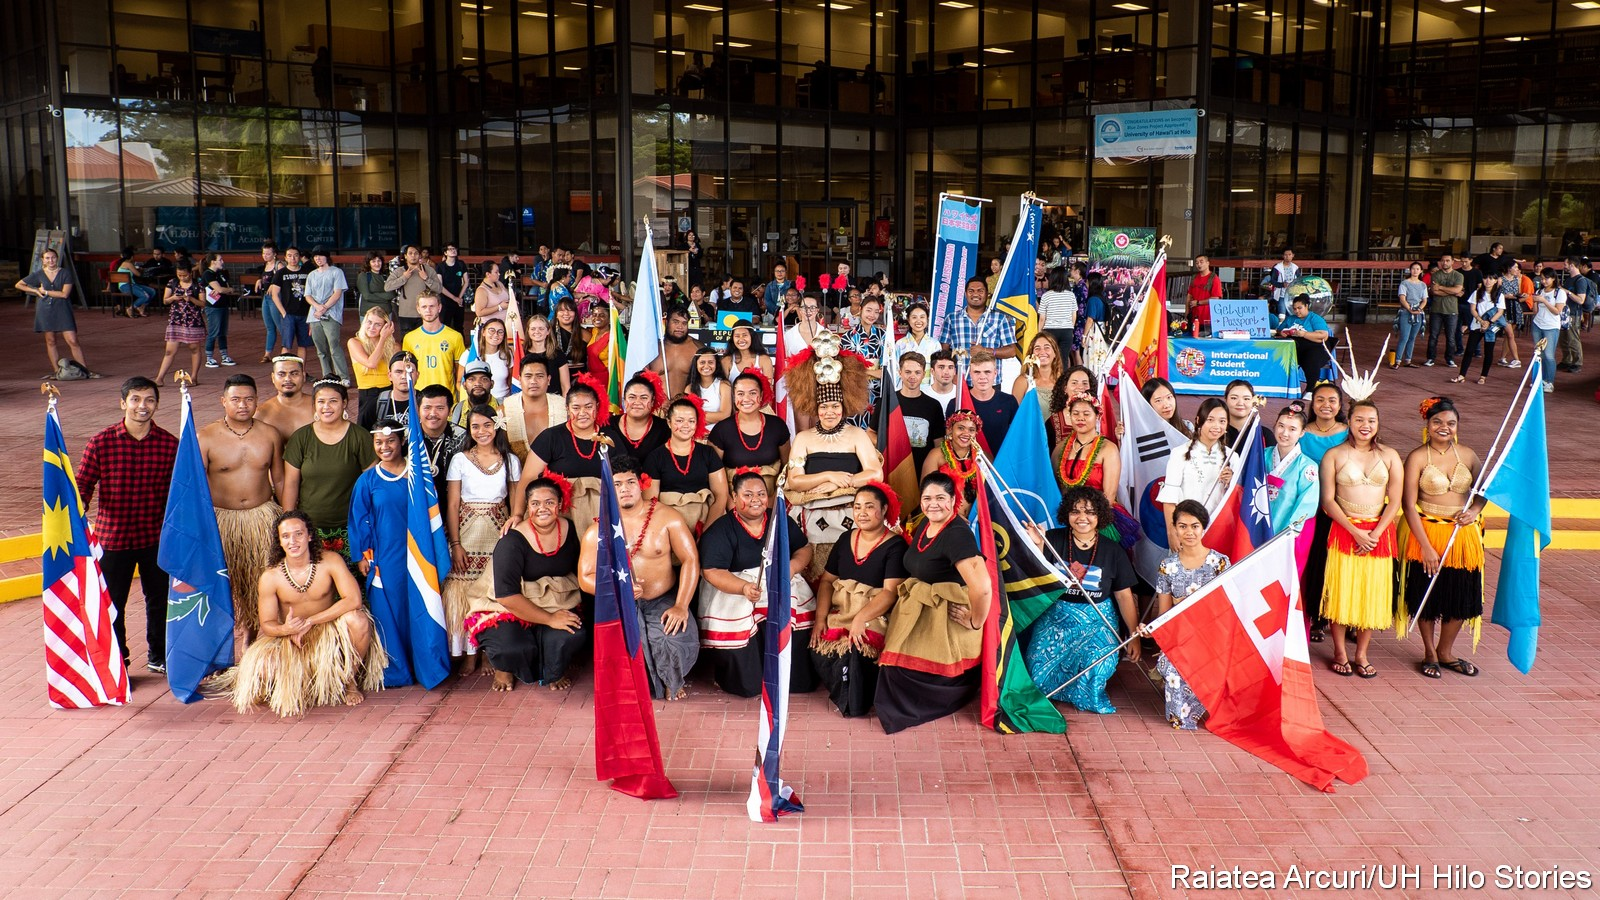 Large group of students in traditional attire of their homelands. Some hold flags from their nation. In the background in the glass facade of the library.